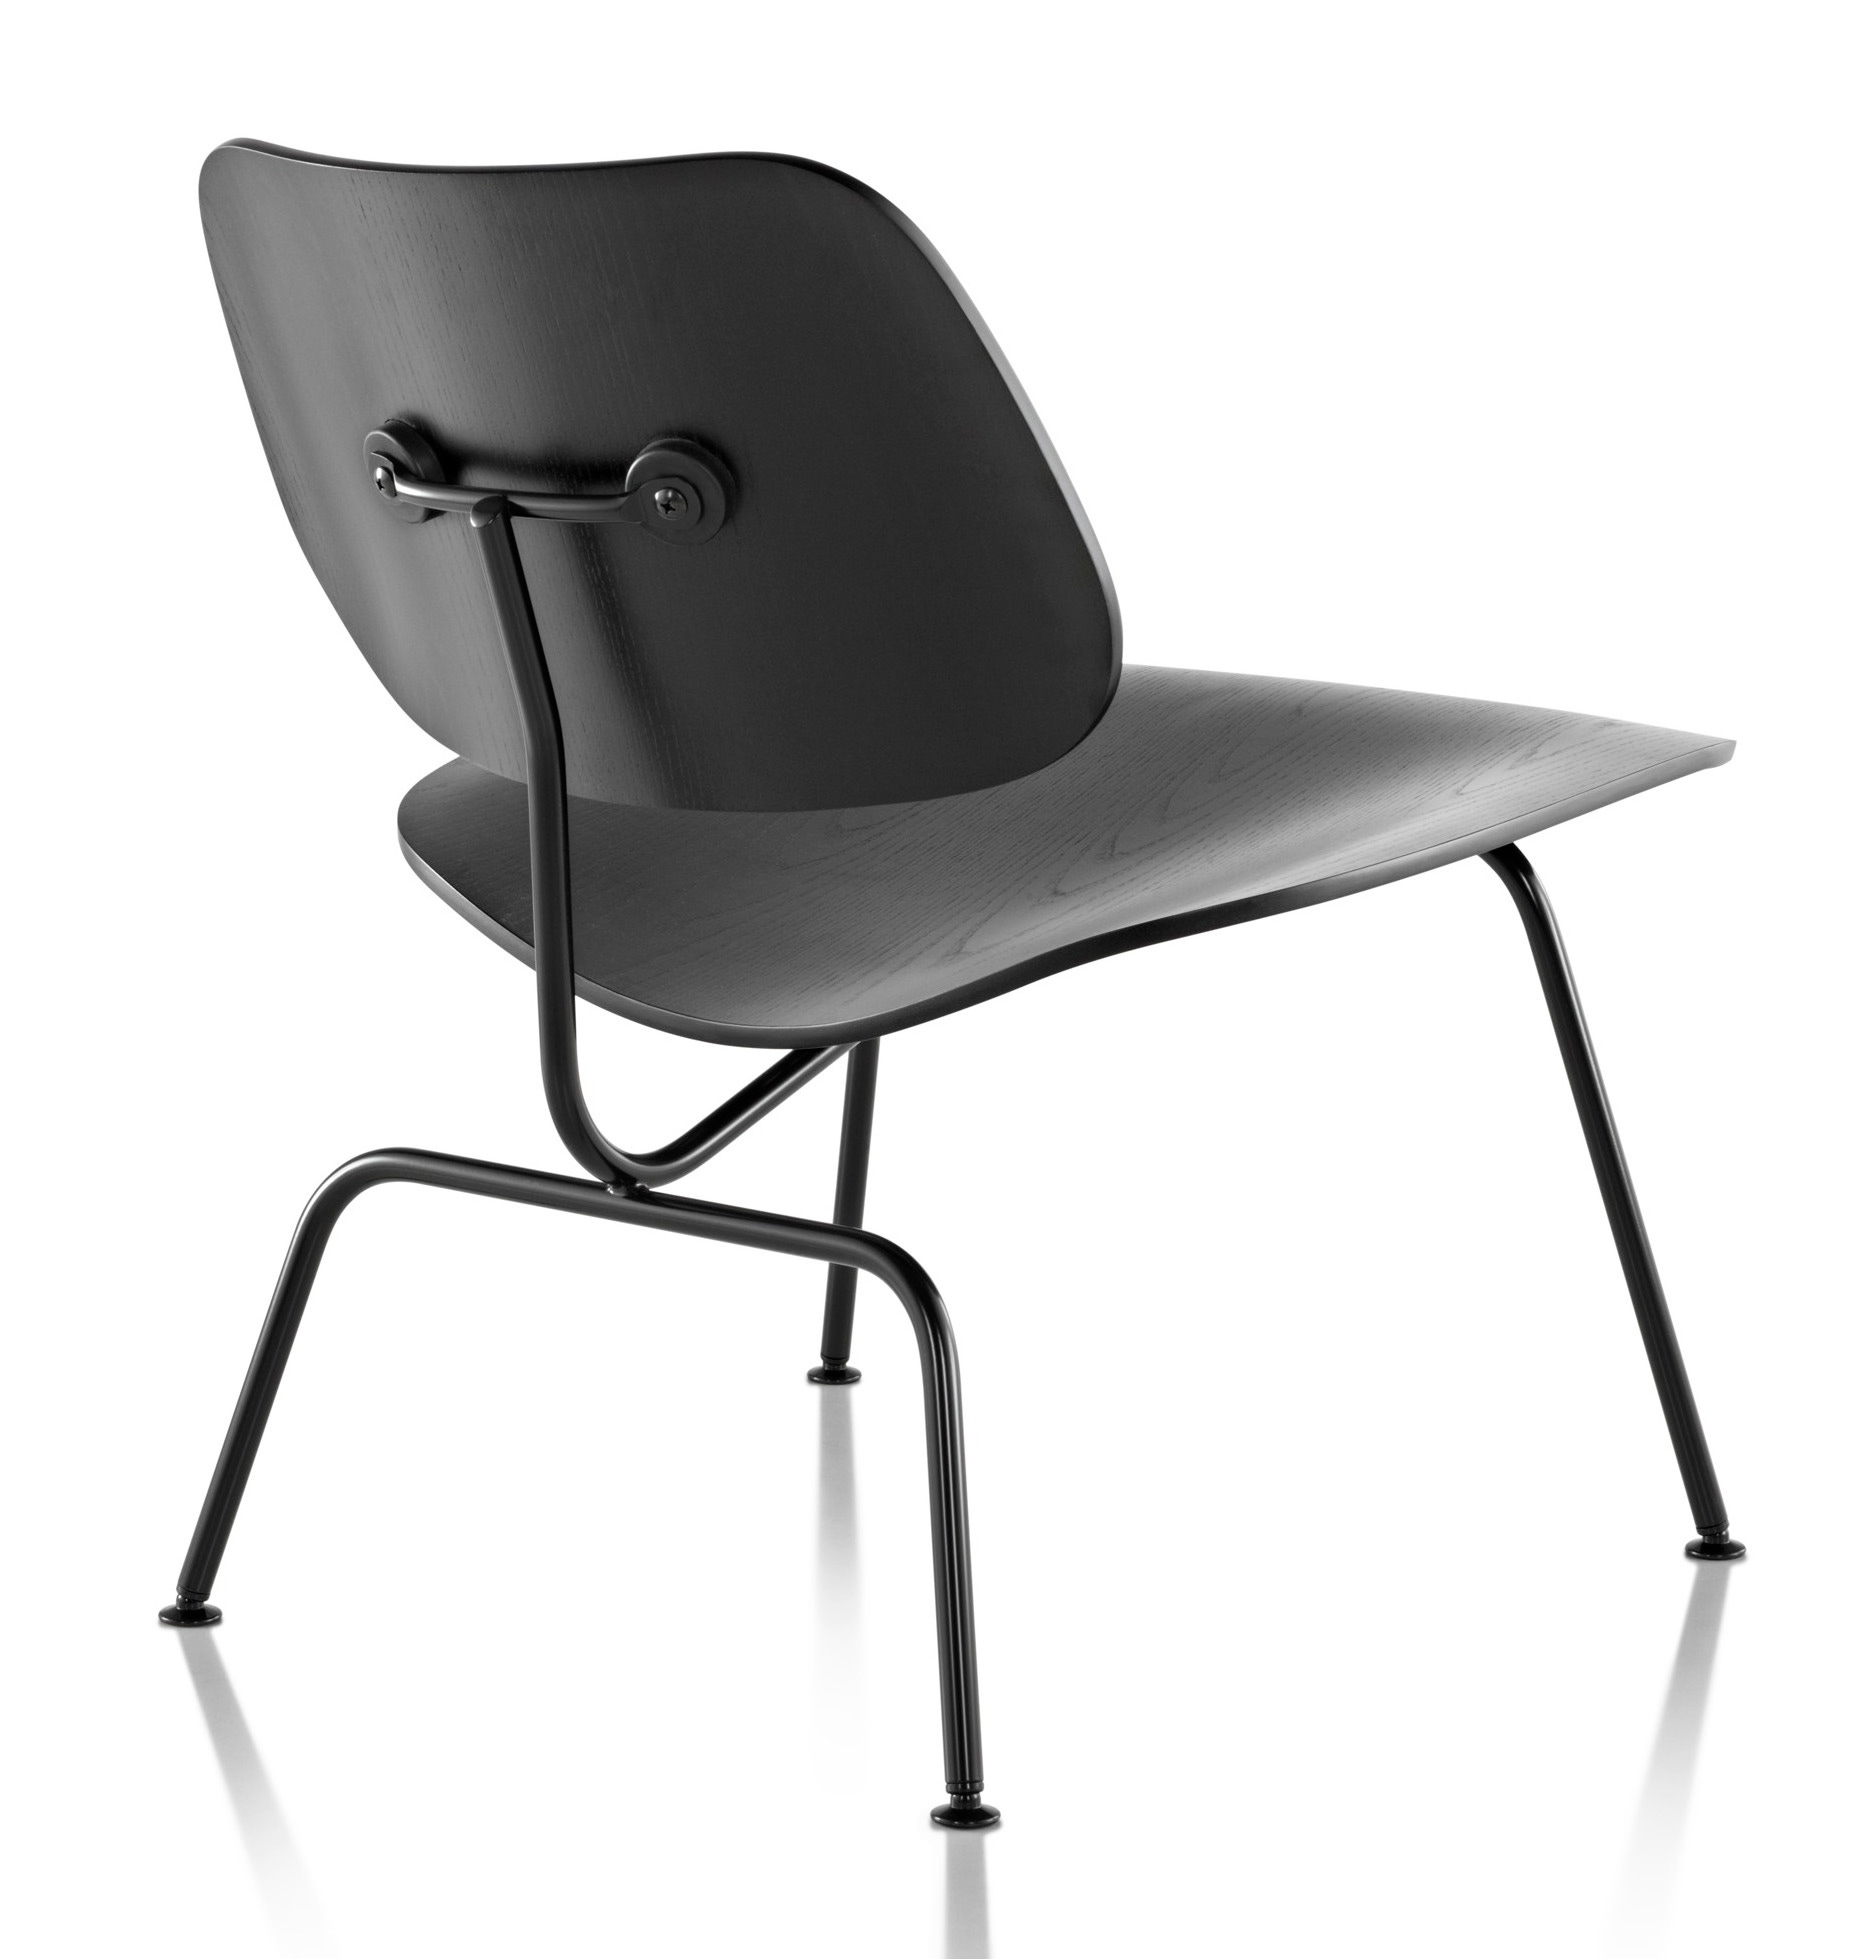 Herman miller eames molded plywood lounge chair metal for Eames herman miller lounge chair